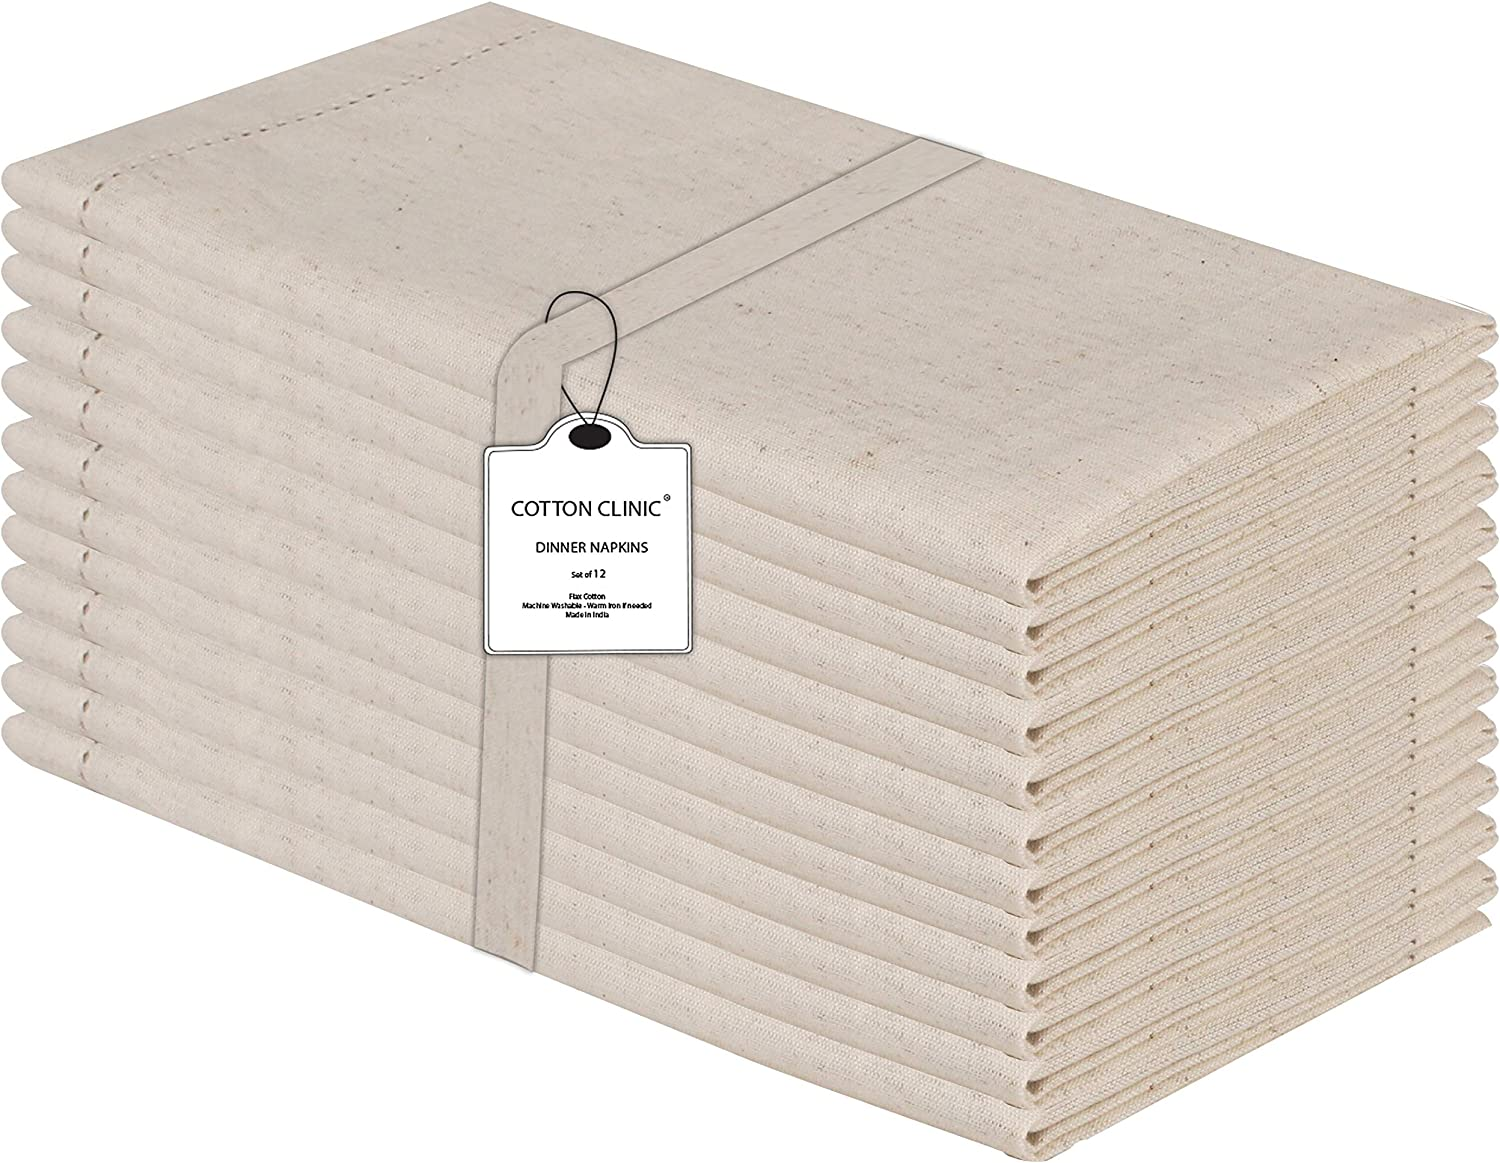 Cotton Clinic 12 Pack Hemstitched Cloth Dinner Napkins Oversized 20x20, Linen Cotton Fabric Tailored with Mitered Corner - Cocktail Napkins, Wedding Dinner Napkins Natural